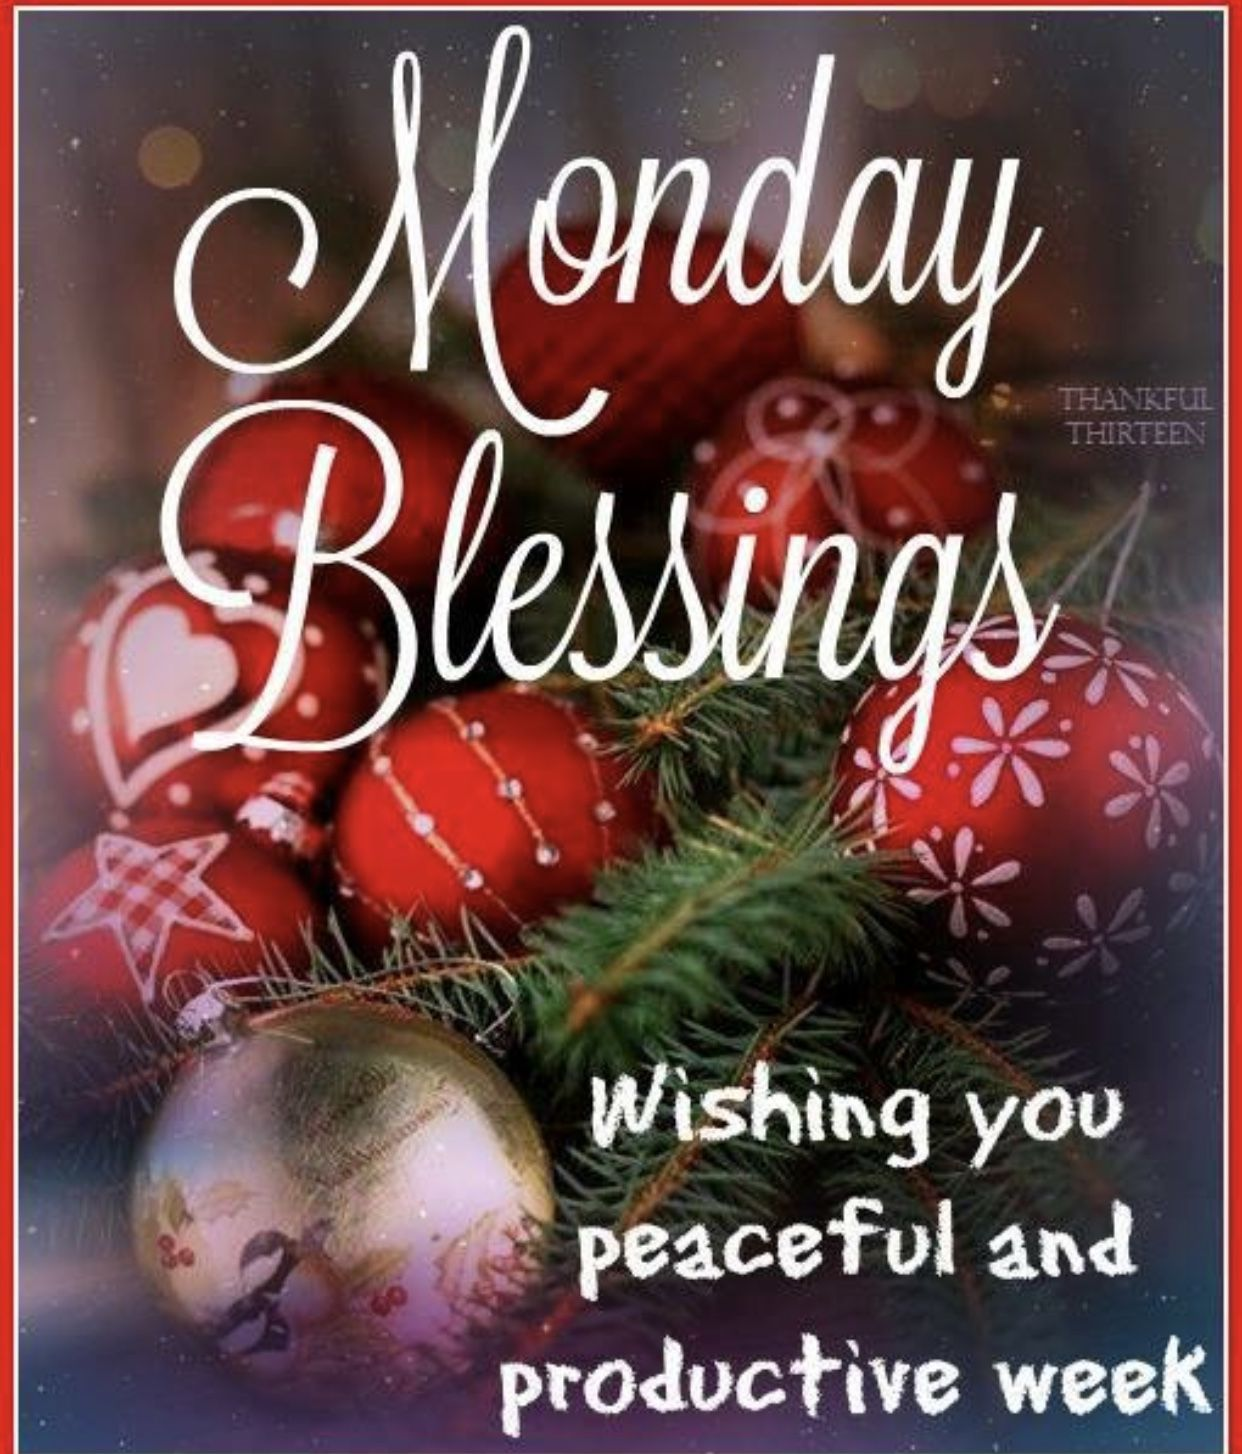 Pin by Judiann on Seven Days A Week....... Monday